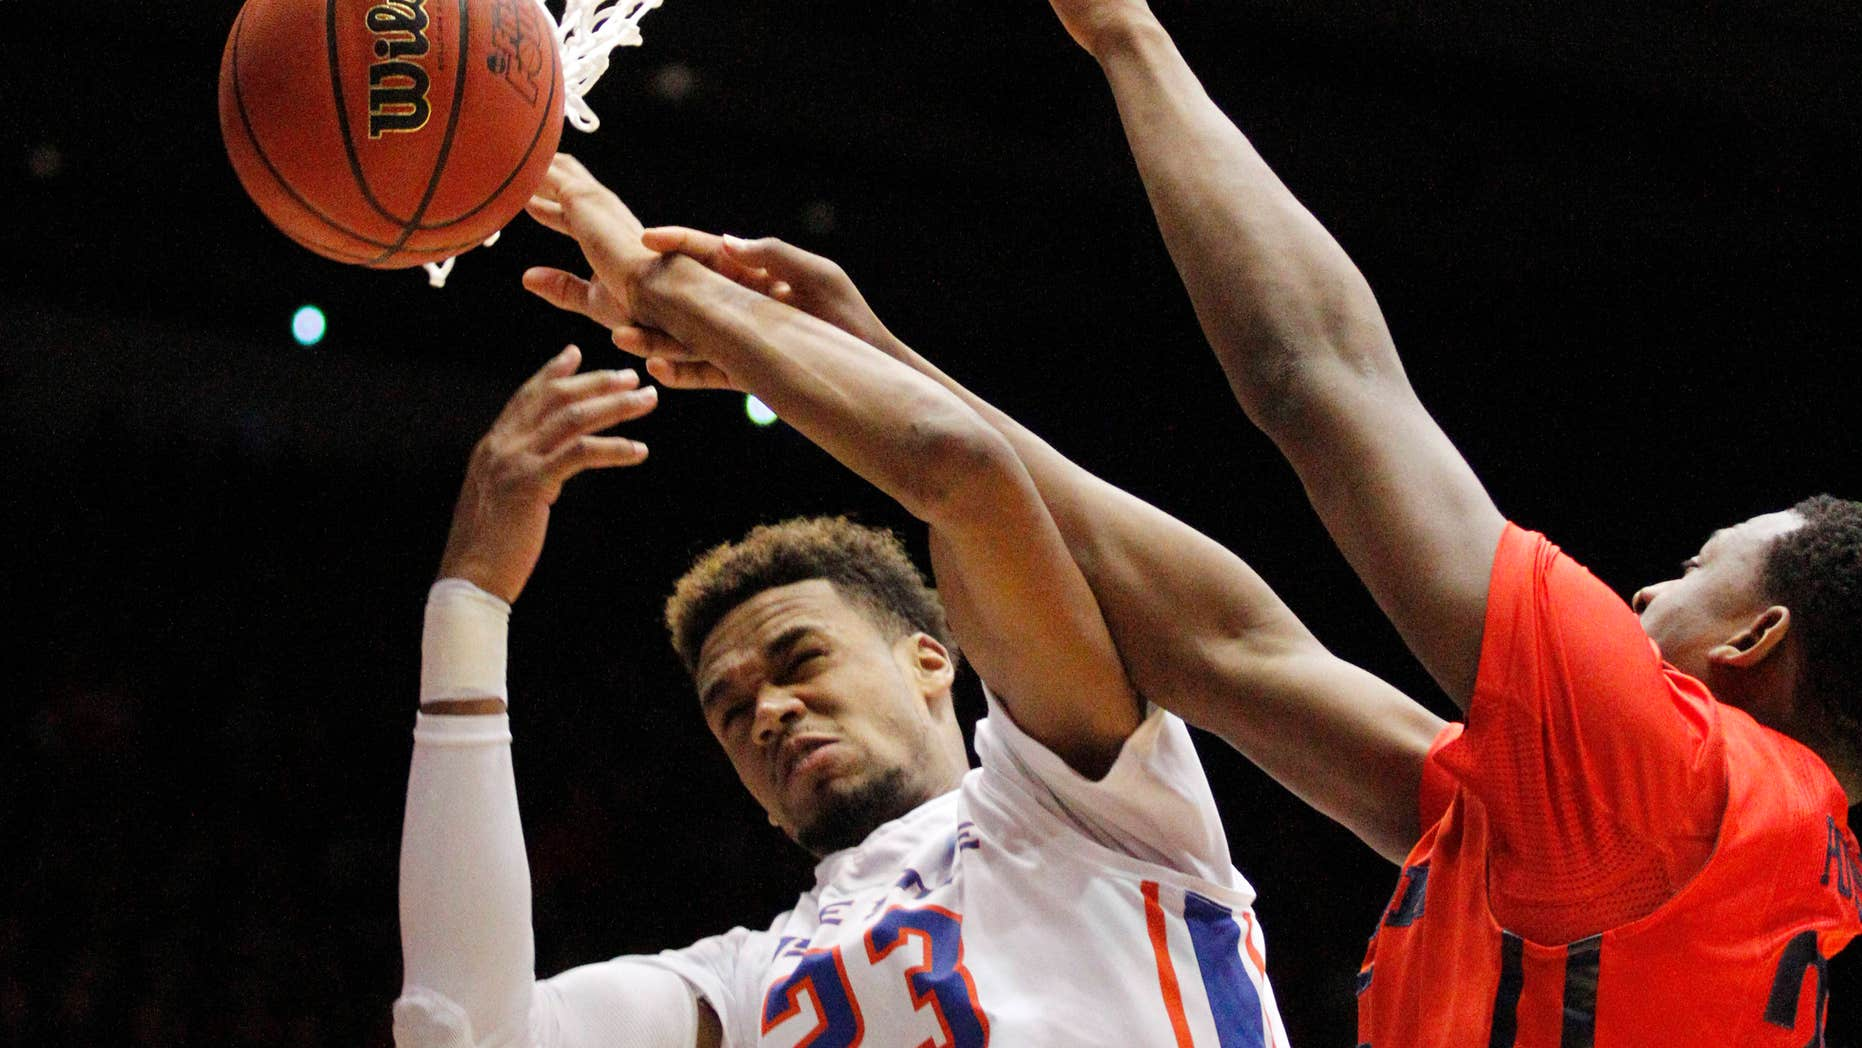 March 18, 2015: Boise State's James Webb III (23) is hit by Dayton's Kendall Pollard in the first half of a first round NCAA tournament basketball game.